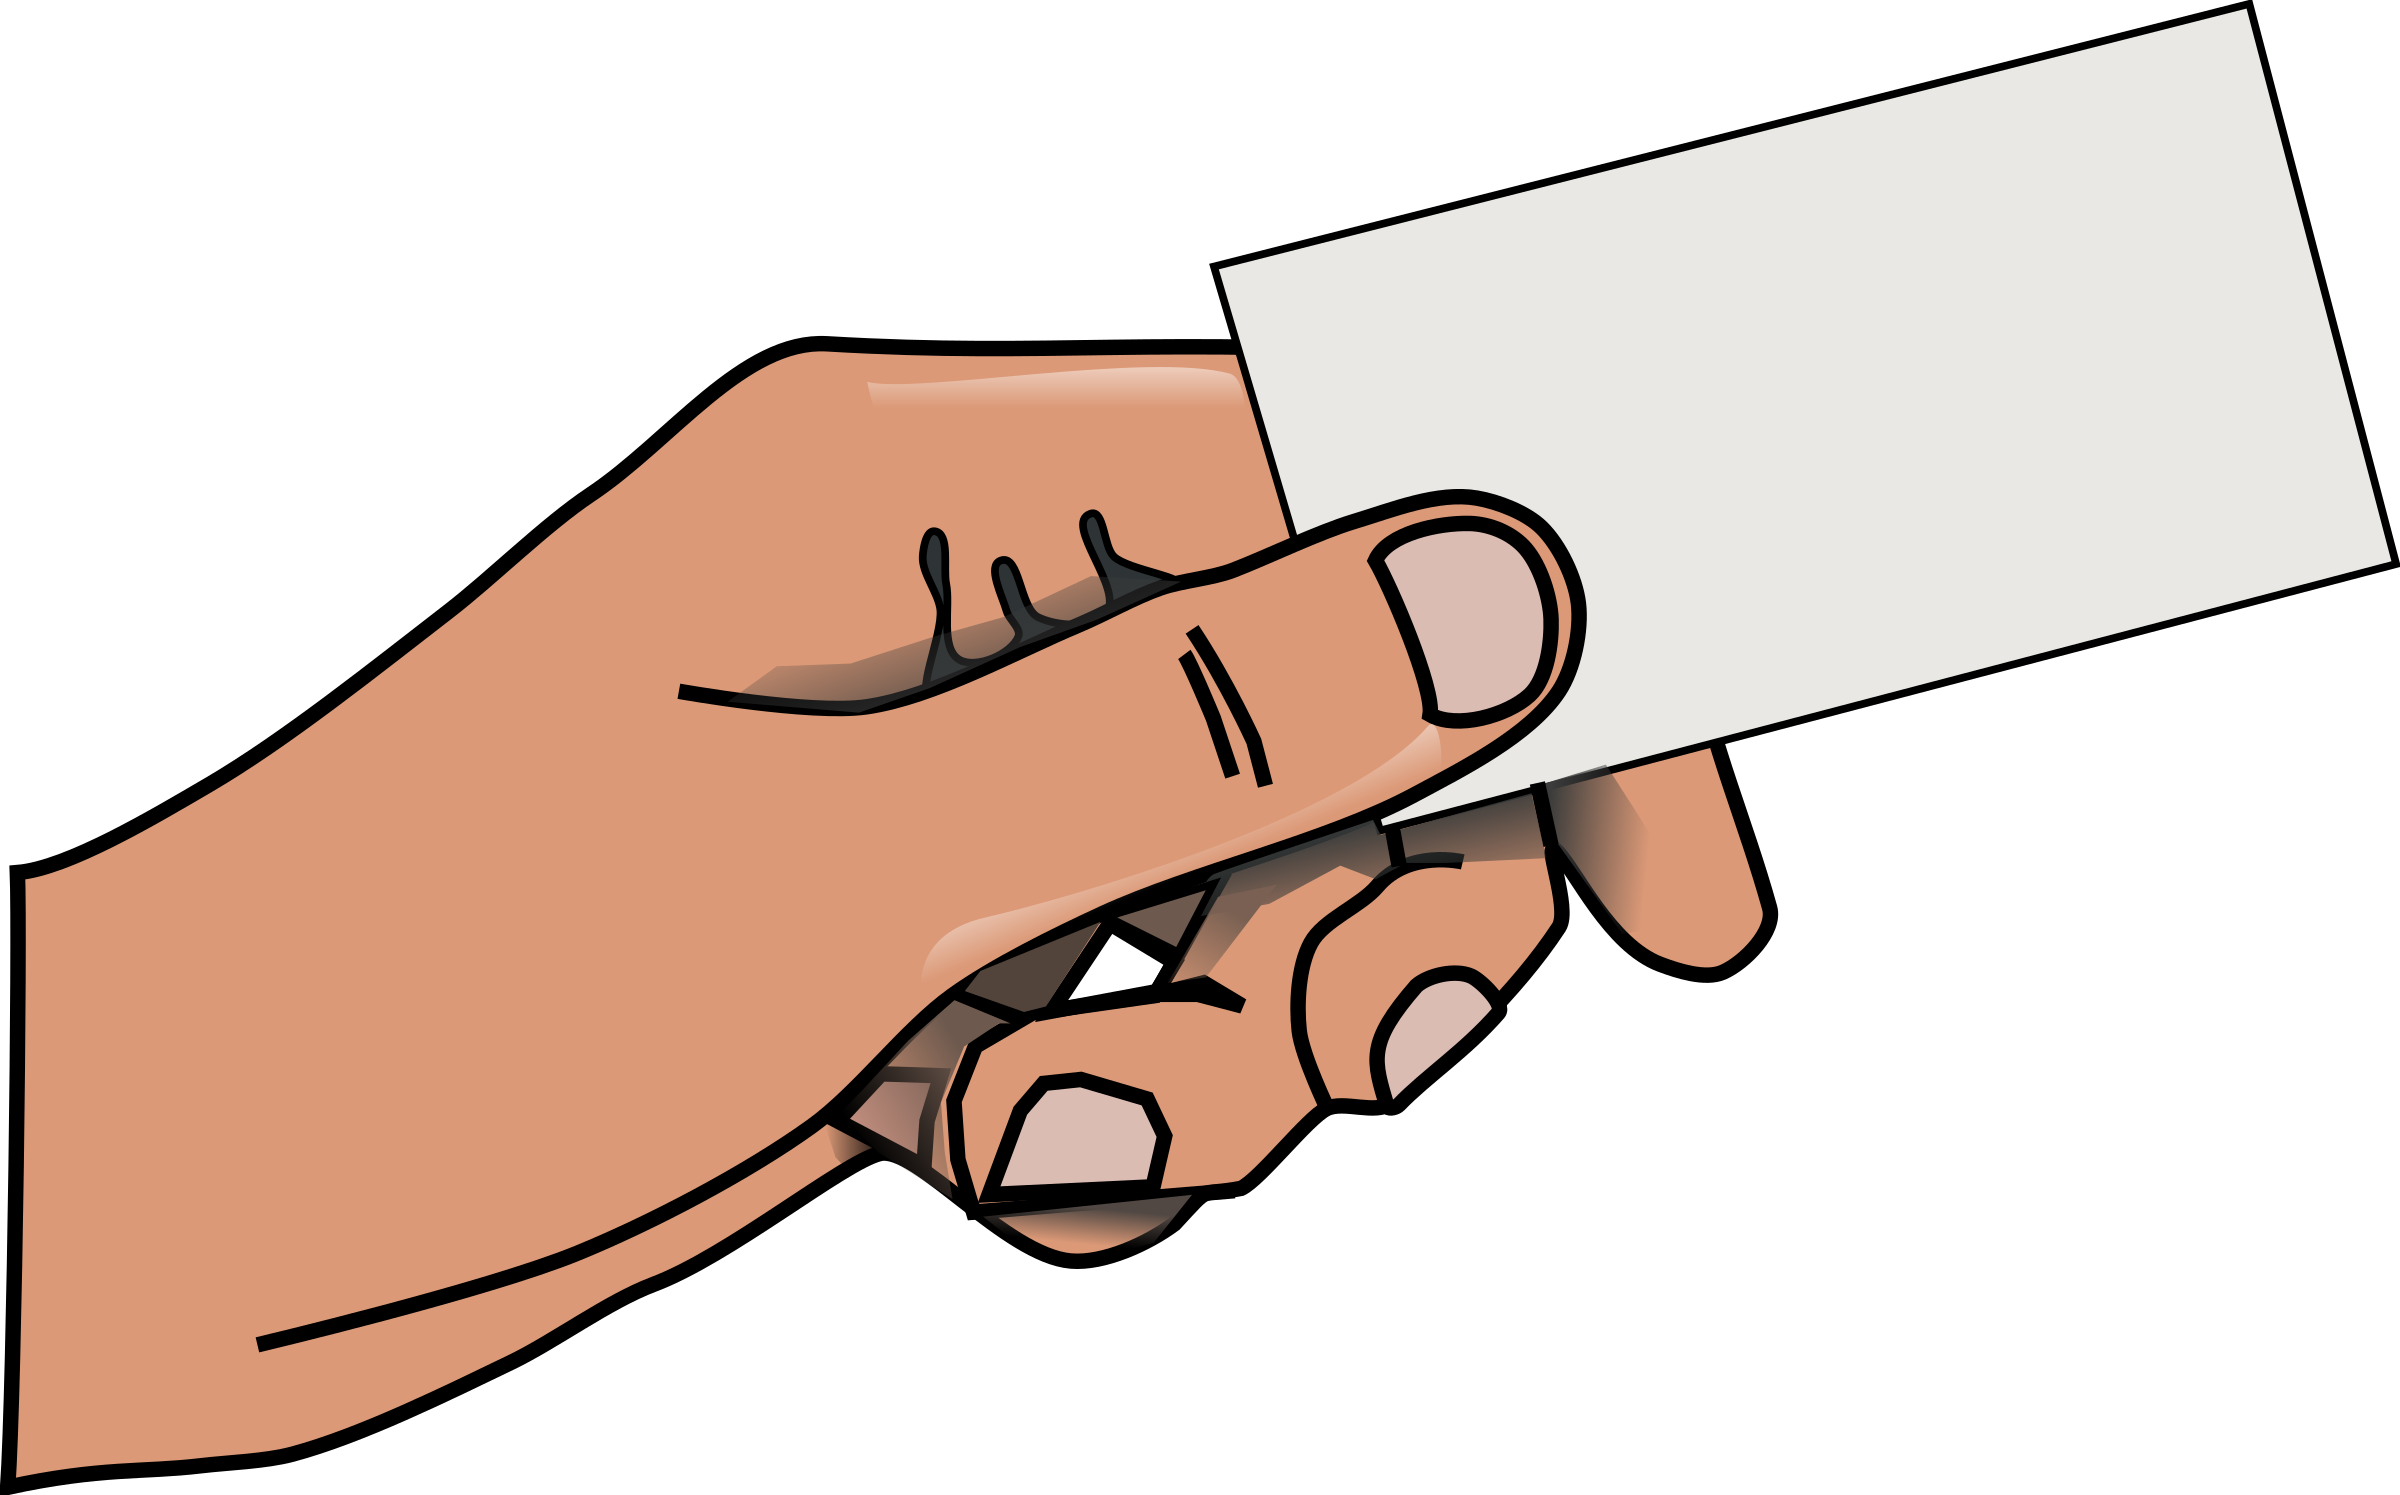 Clipart hammer hand holding. With card big image